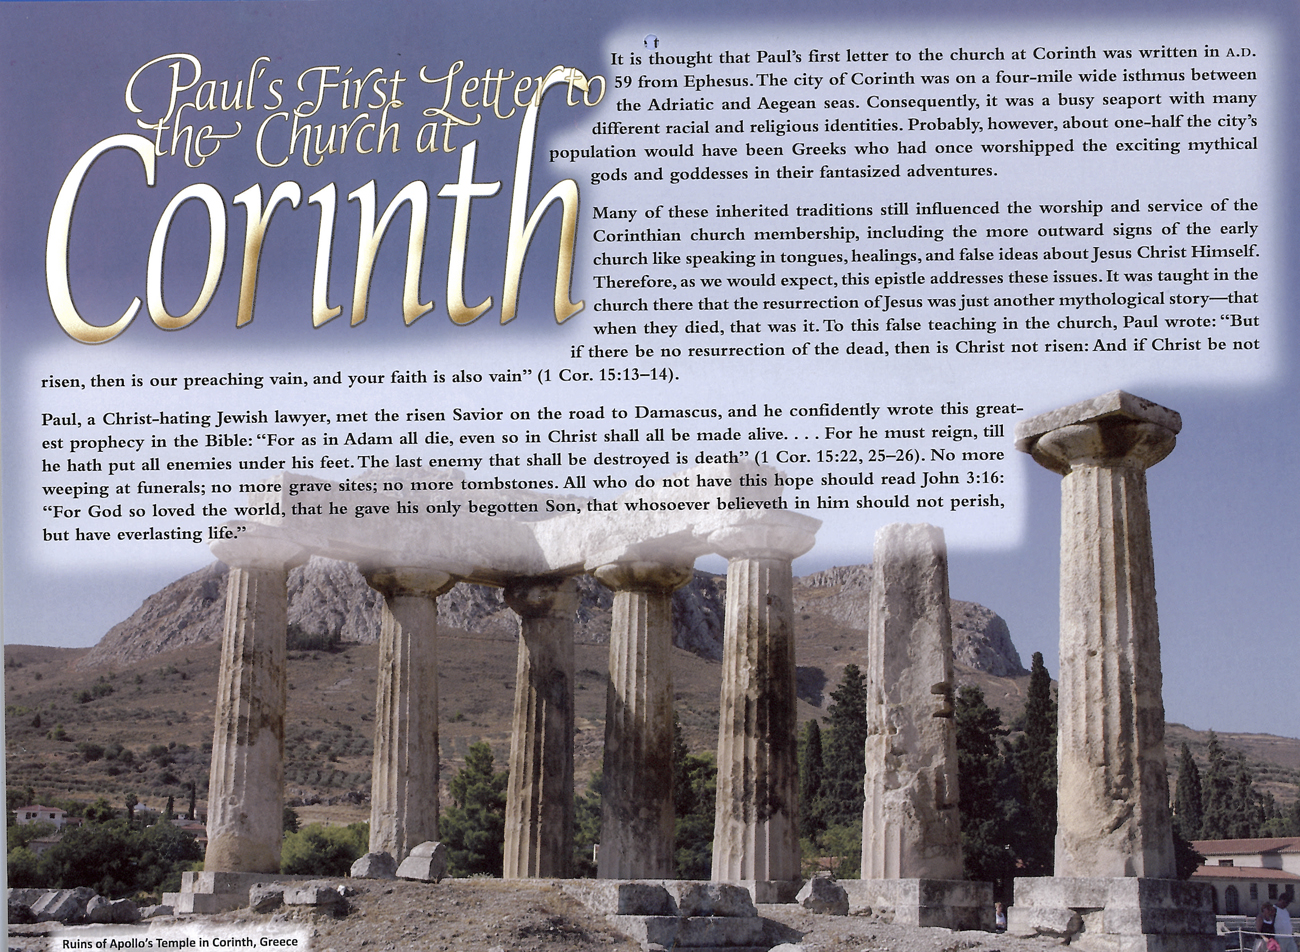 2012 Prophecy Calendar: February - Paul's First Letter to the Chuirch at Corinth